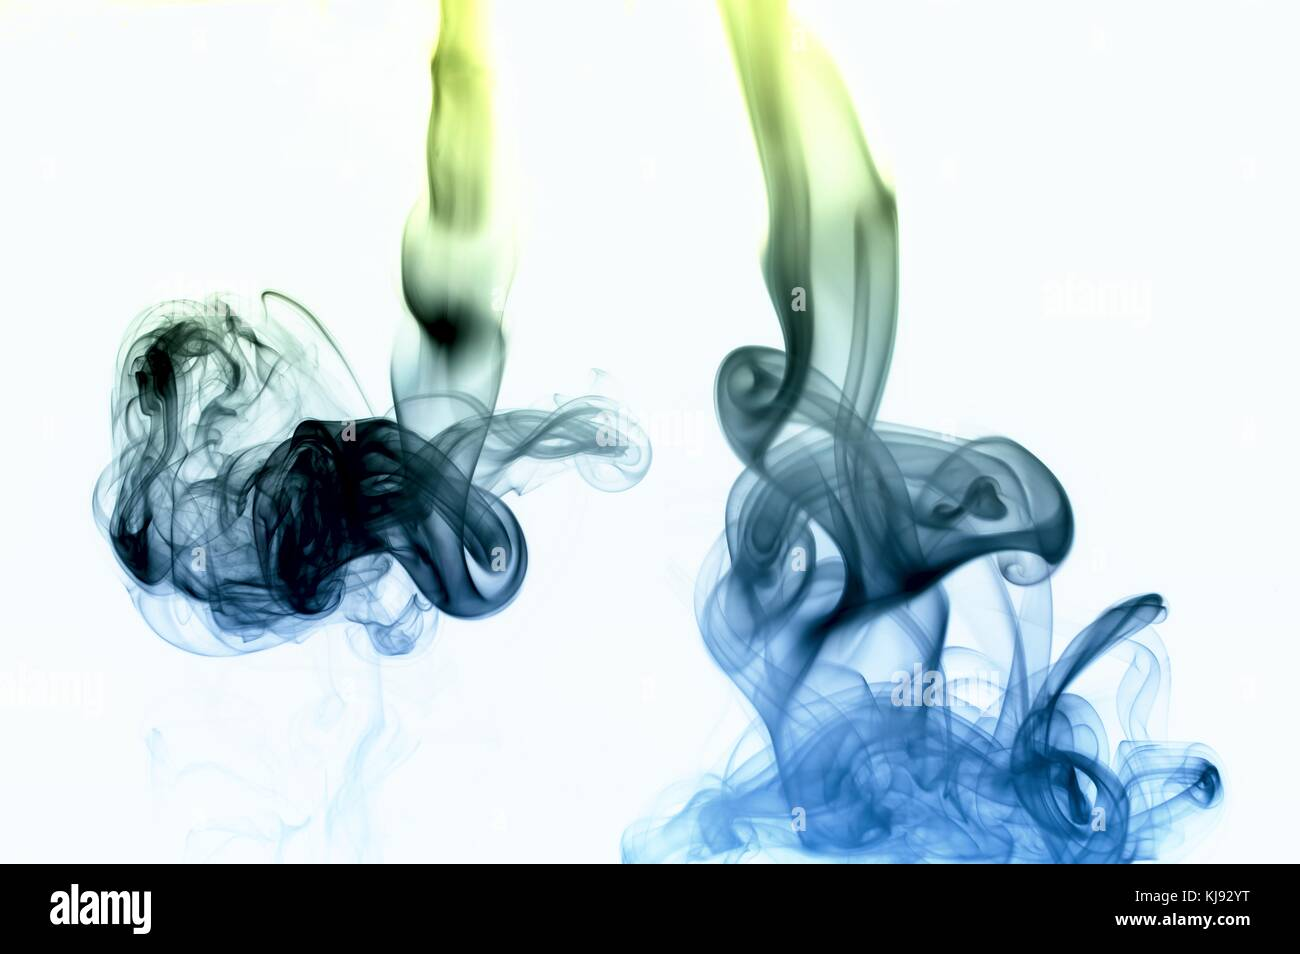 Abtract smoke shape in blue and green isolated on white - Stock Image